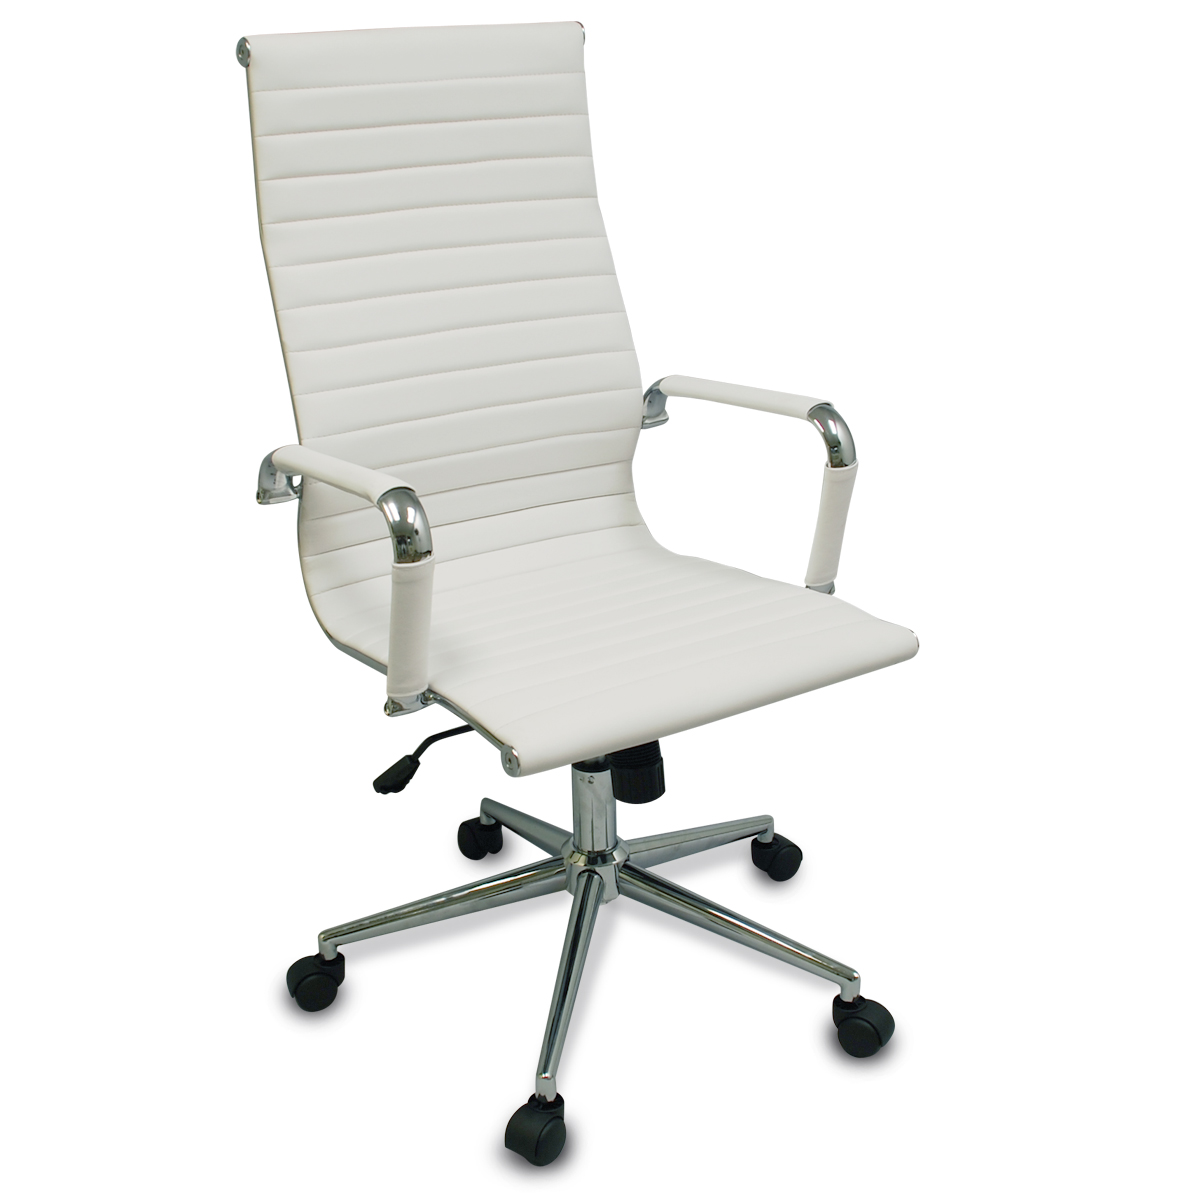 modern white desk chair hanging ebay uk new executive ergonomic conference computer